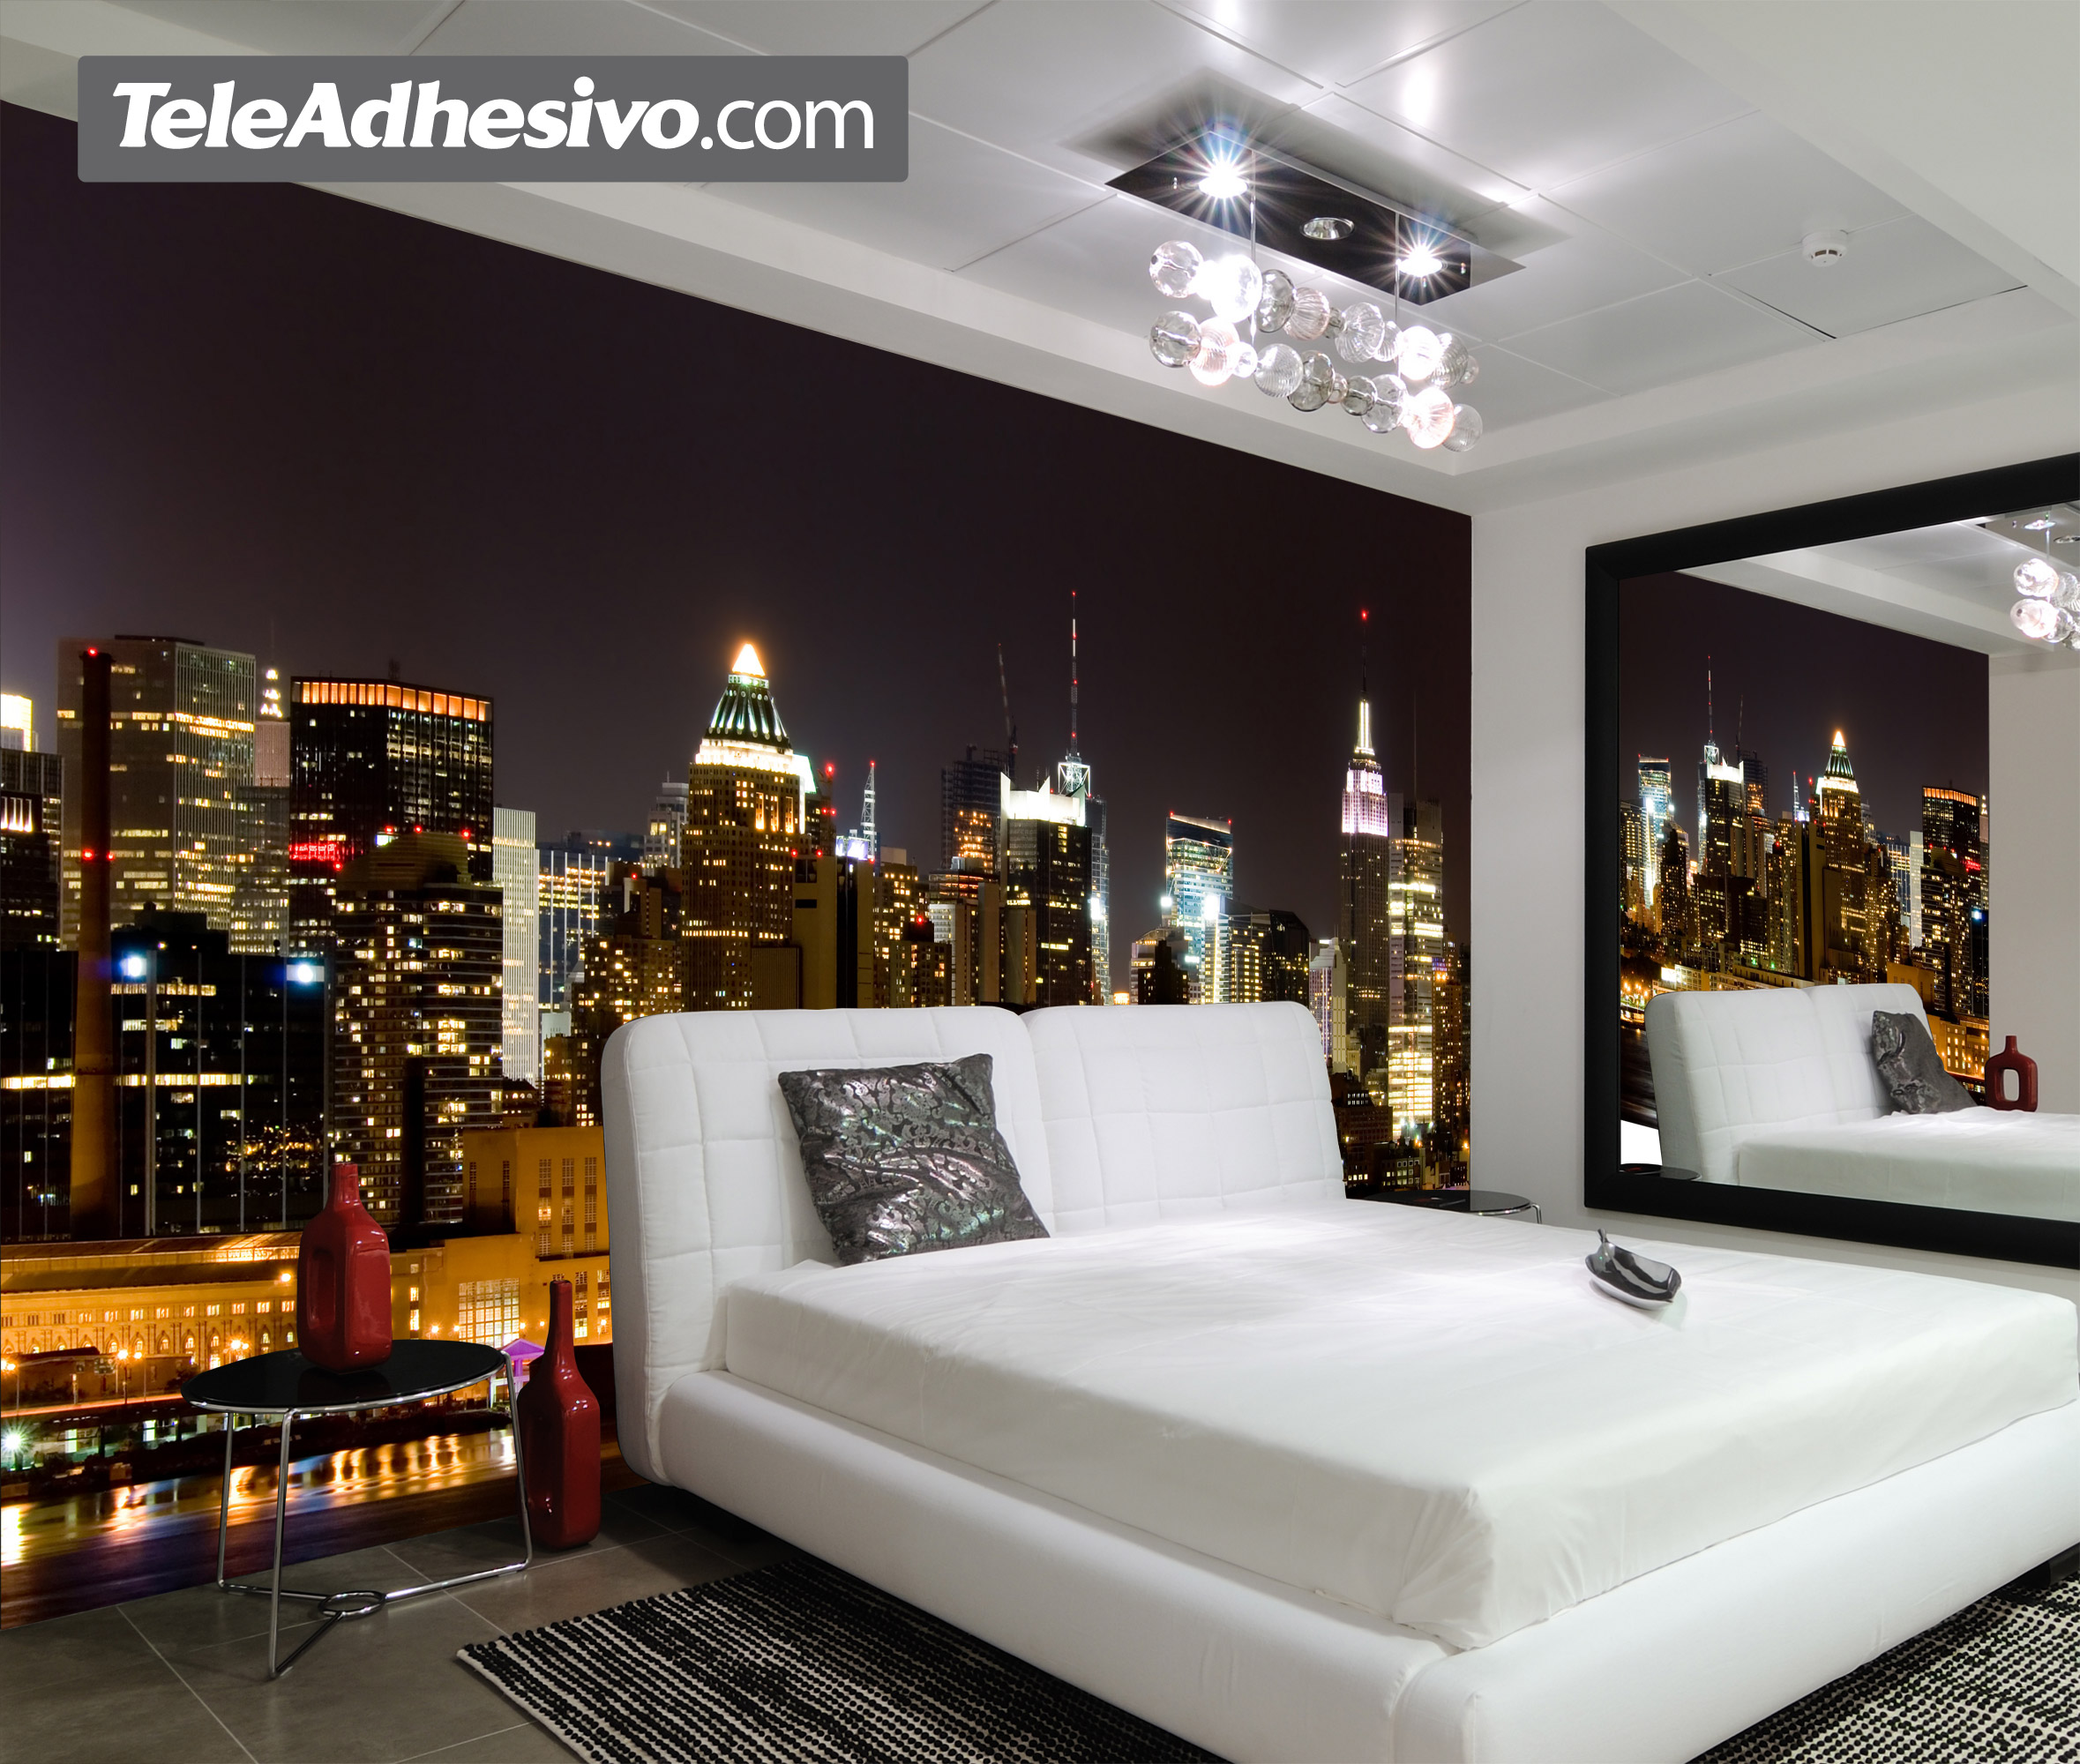 Papier peint chambre ado new york id es de d coration et for Idee decoration chambre ado new york